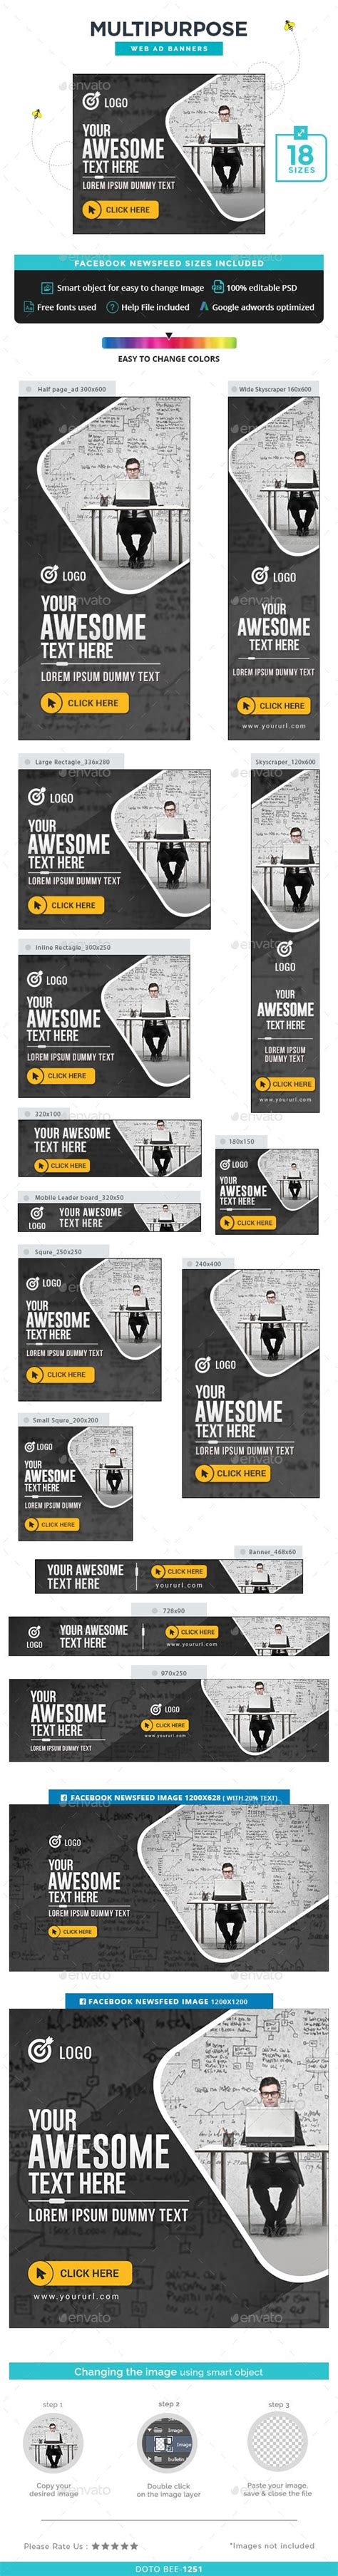 Banners Redes Sociales Template by Pin De Best Graphic Design En Web Banners Template Psd